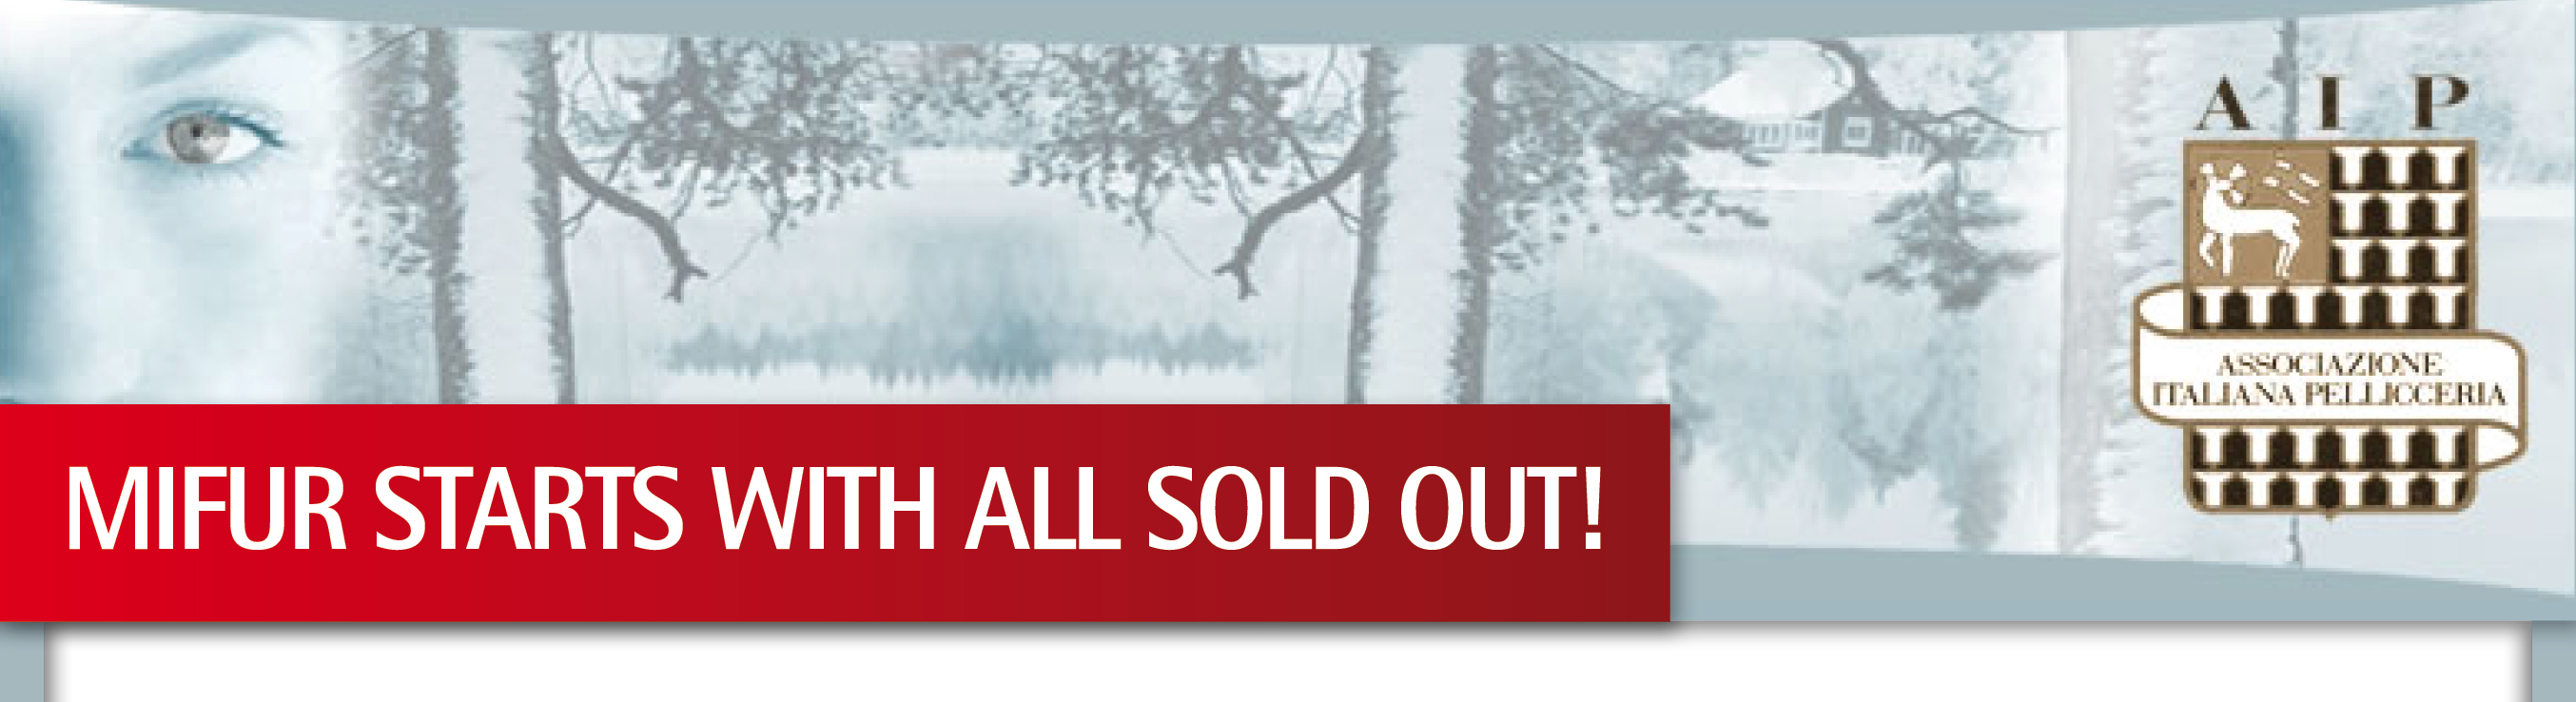 MIFUR starts with ALL SOLD OUT!